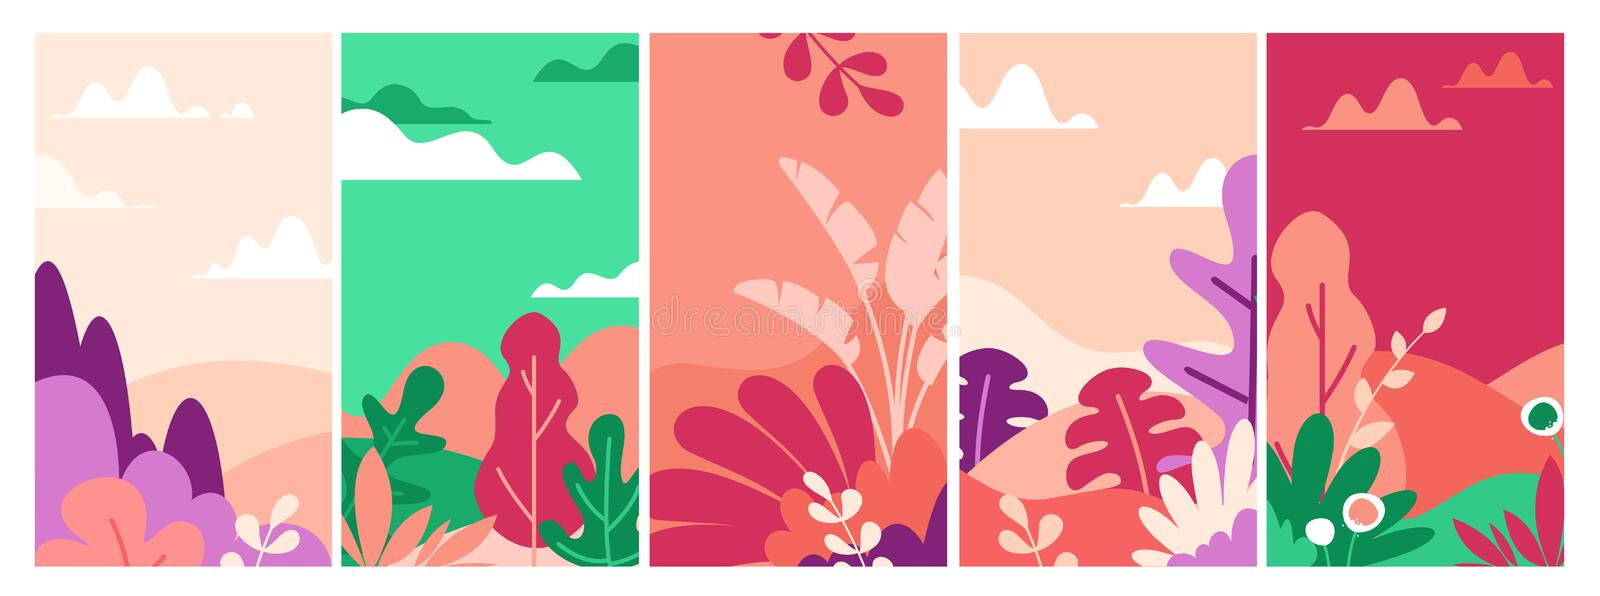 Landscapes flat vector illustrations set. Beautiful nature view abstract backgrounds pack. Field with trees and flowers stock illustration